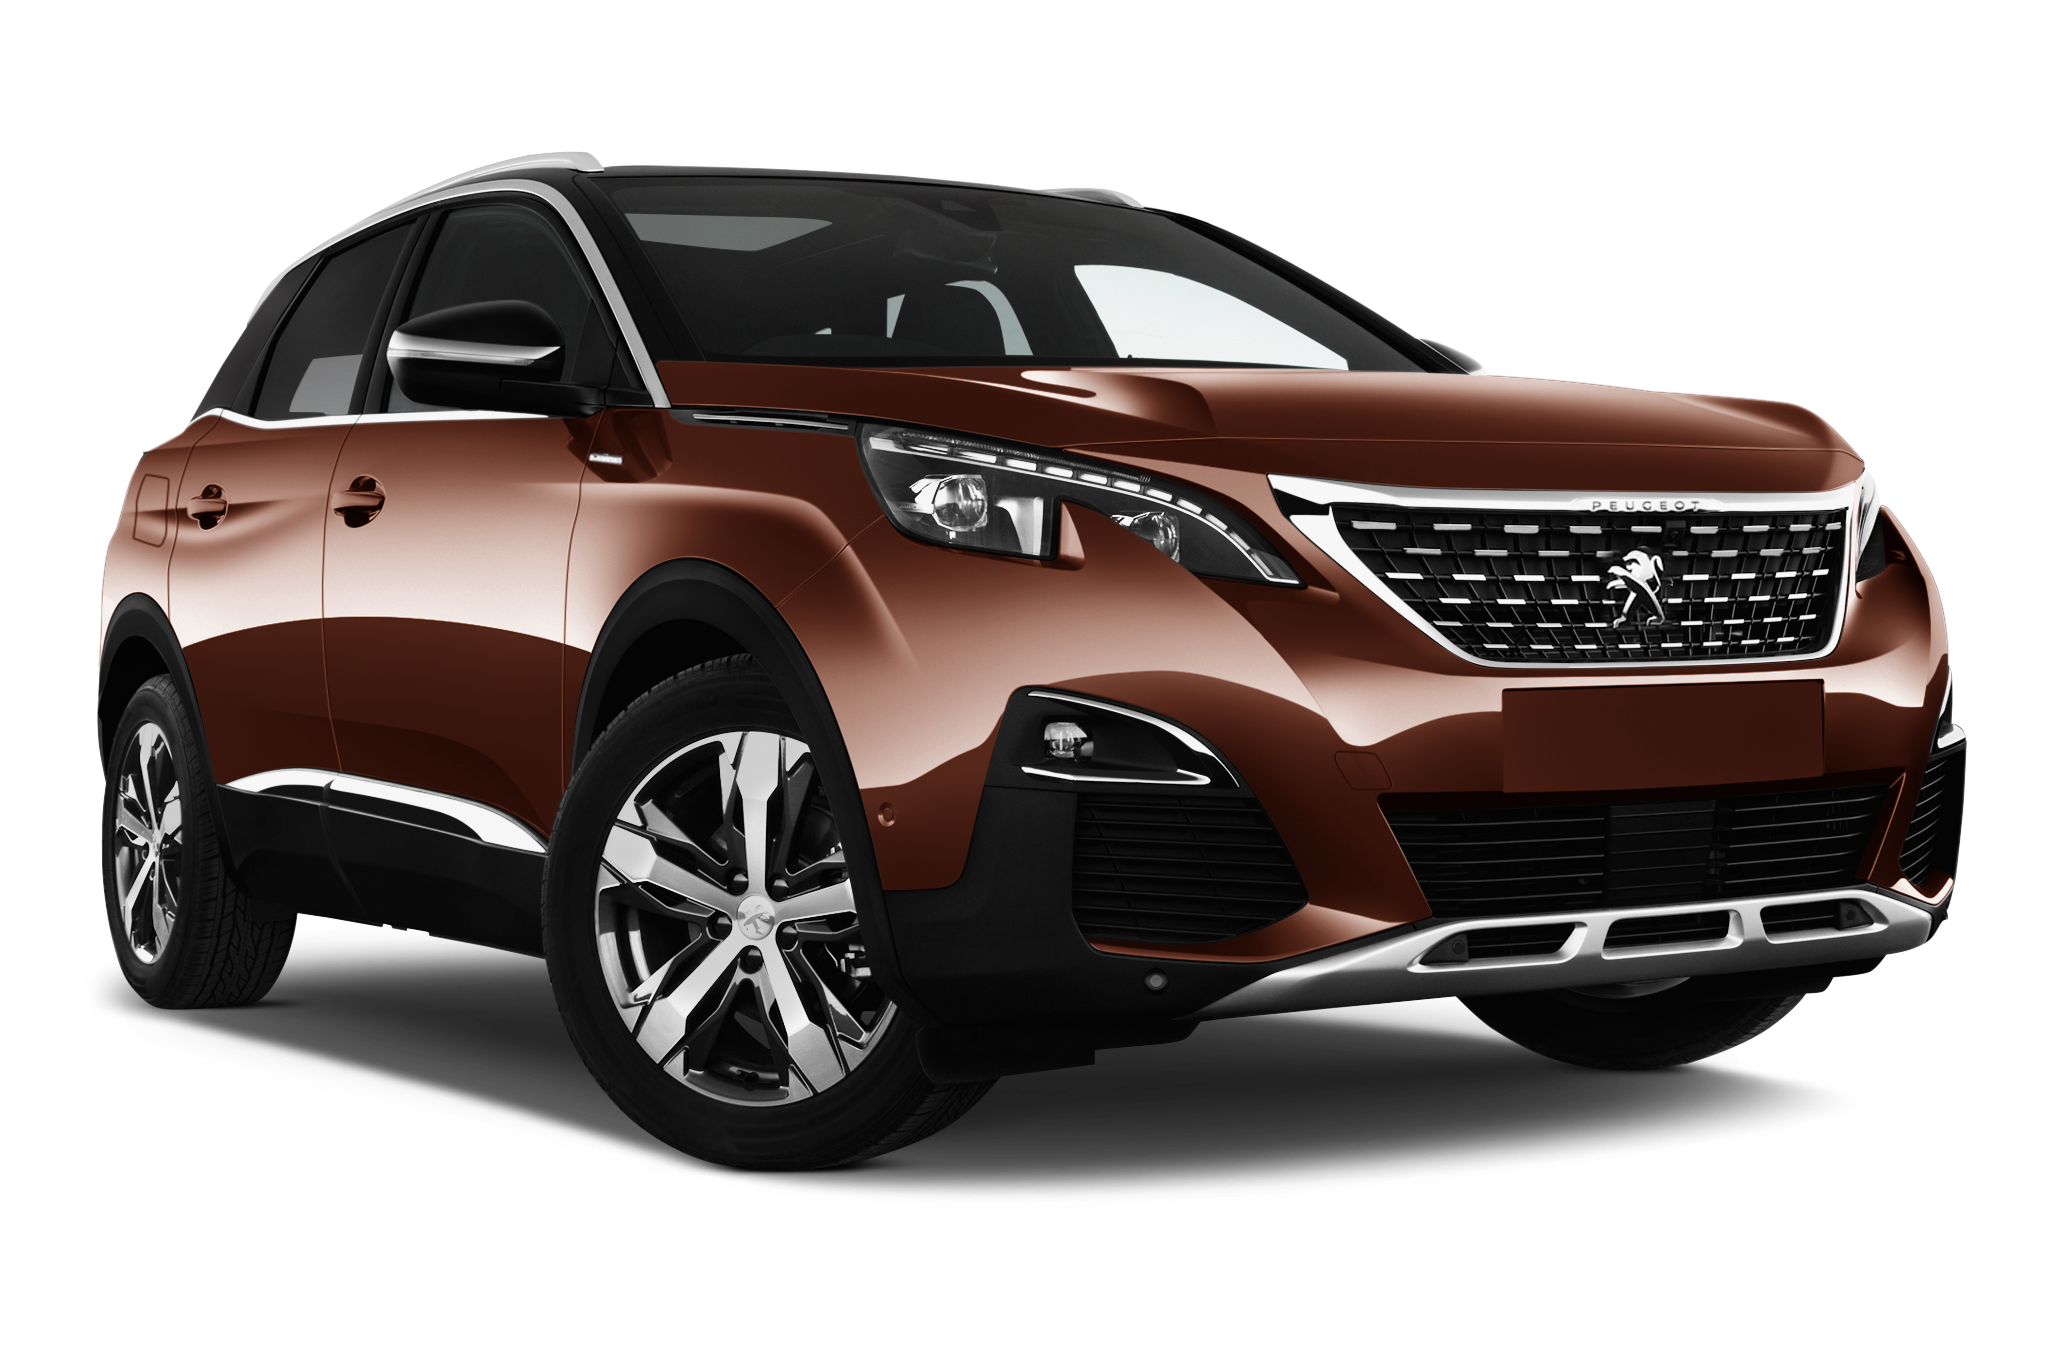 peugeot 3008 specifications & prices | carwow